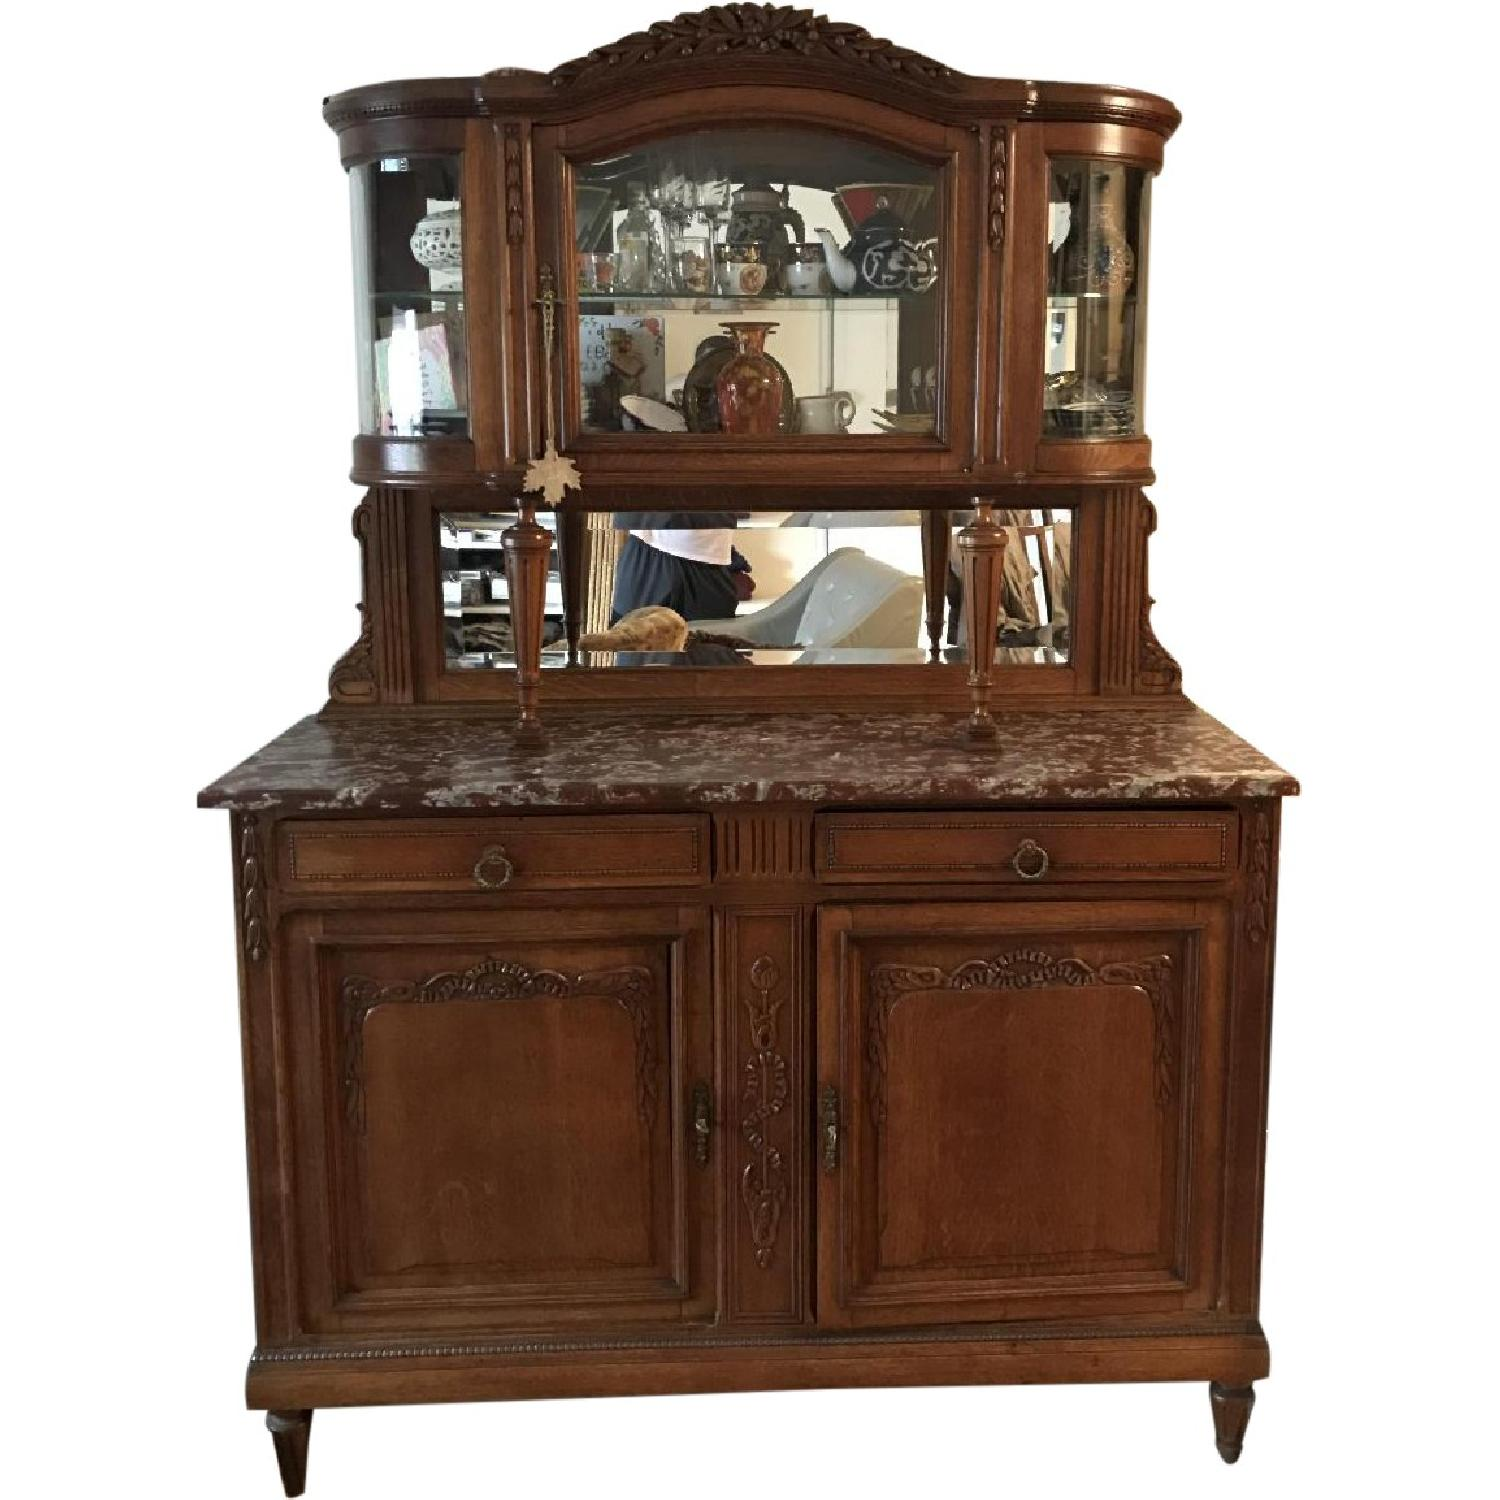 French Antique Handmade Buffet/China Cabinet - image-0